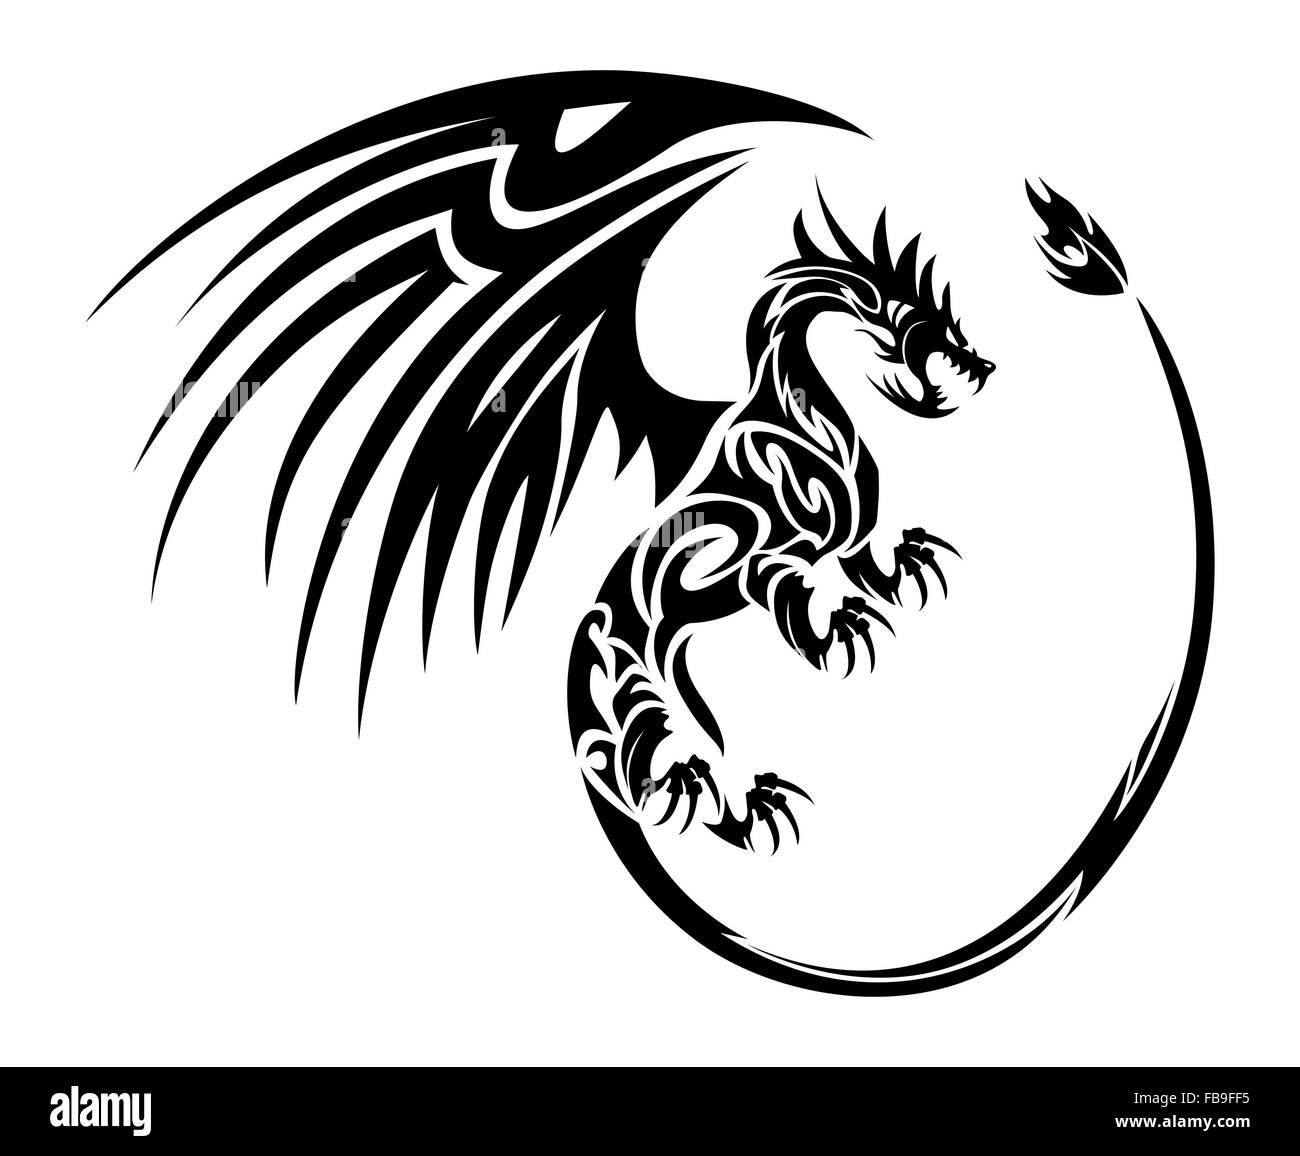 Tribal Dragon Tattoo Stock Photos Tribal Dragon Tattoo Stock